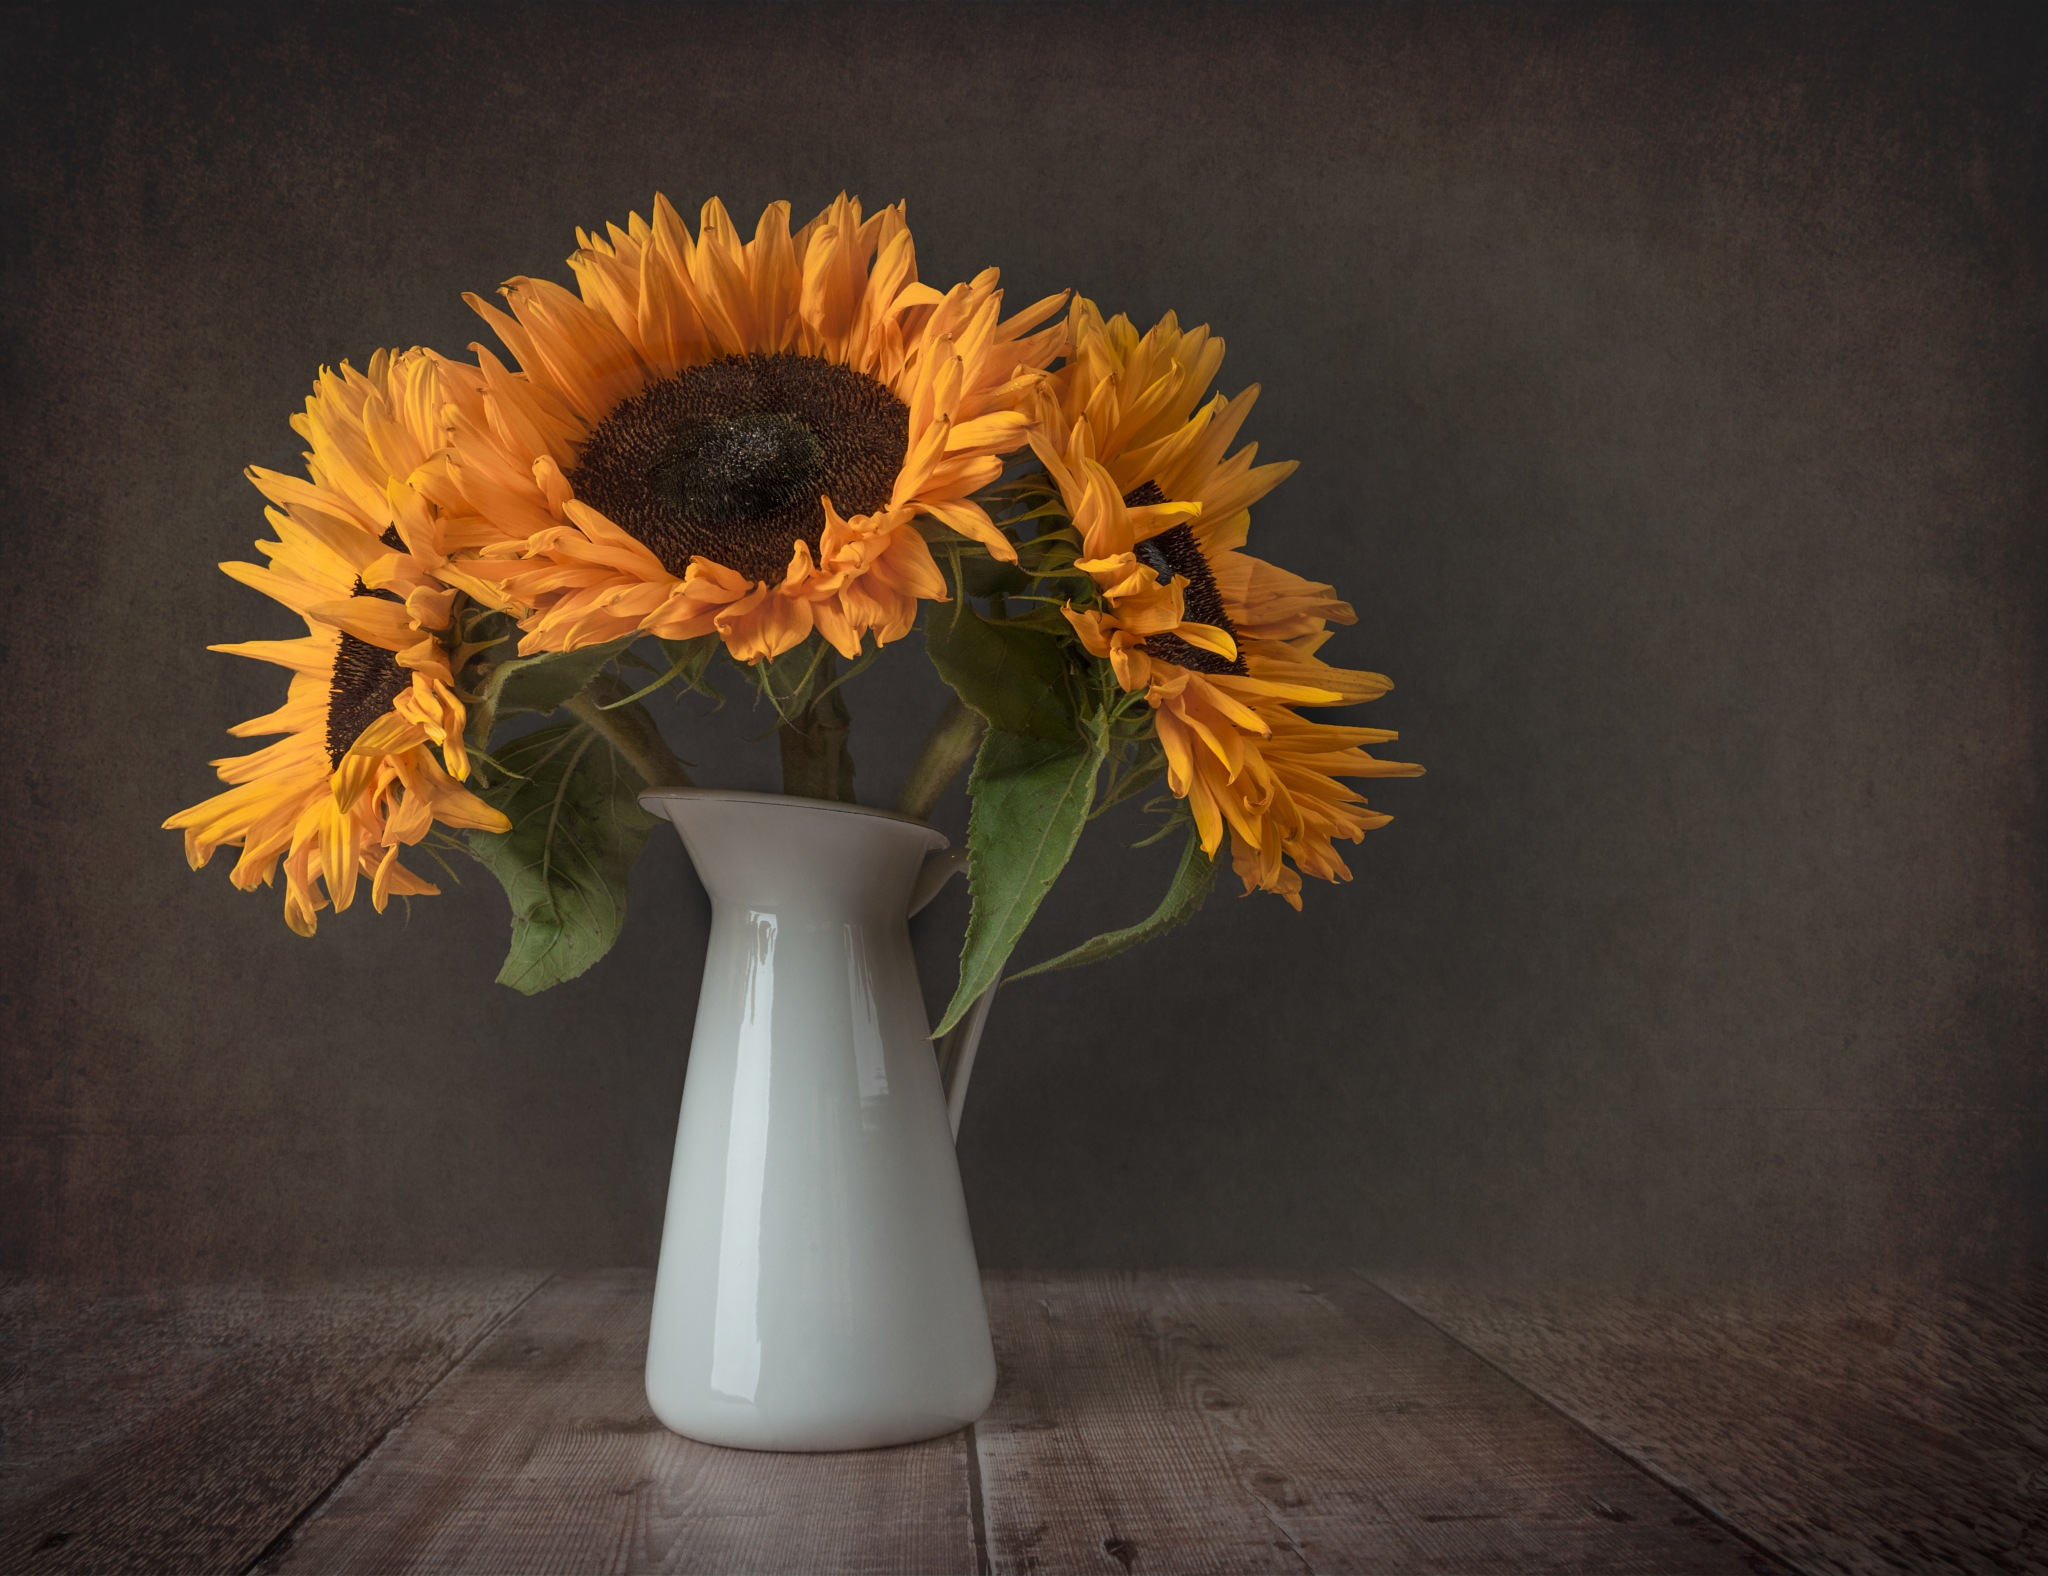 Sunflowers by KarenT